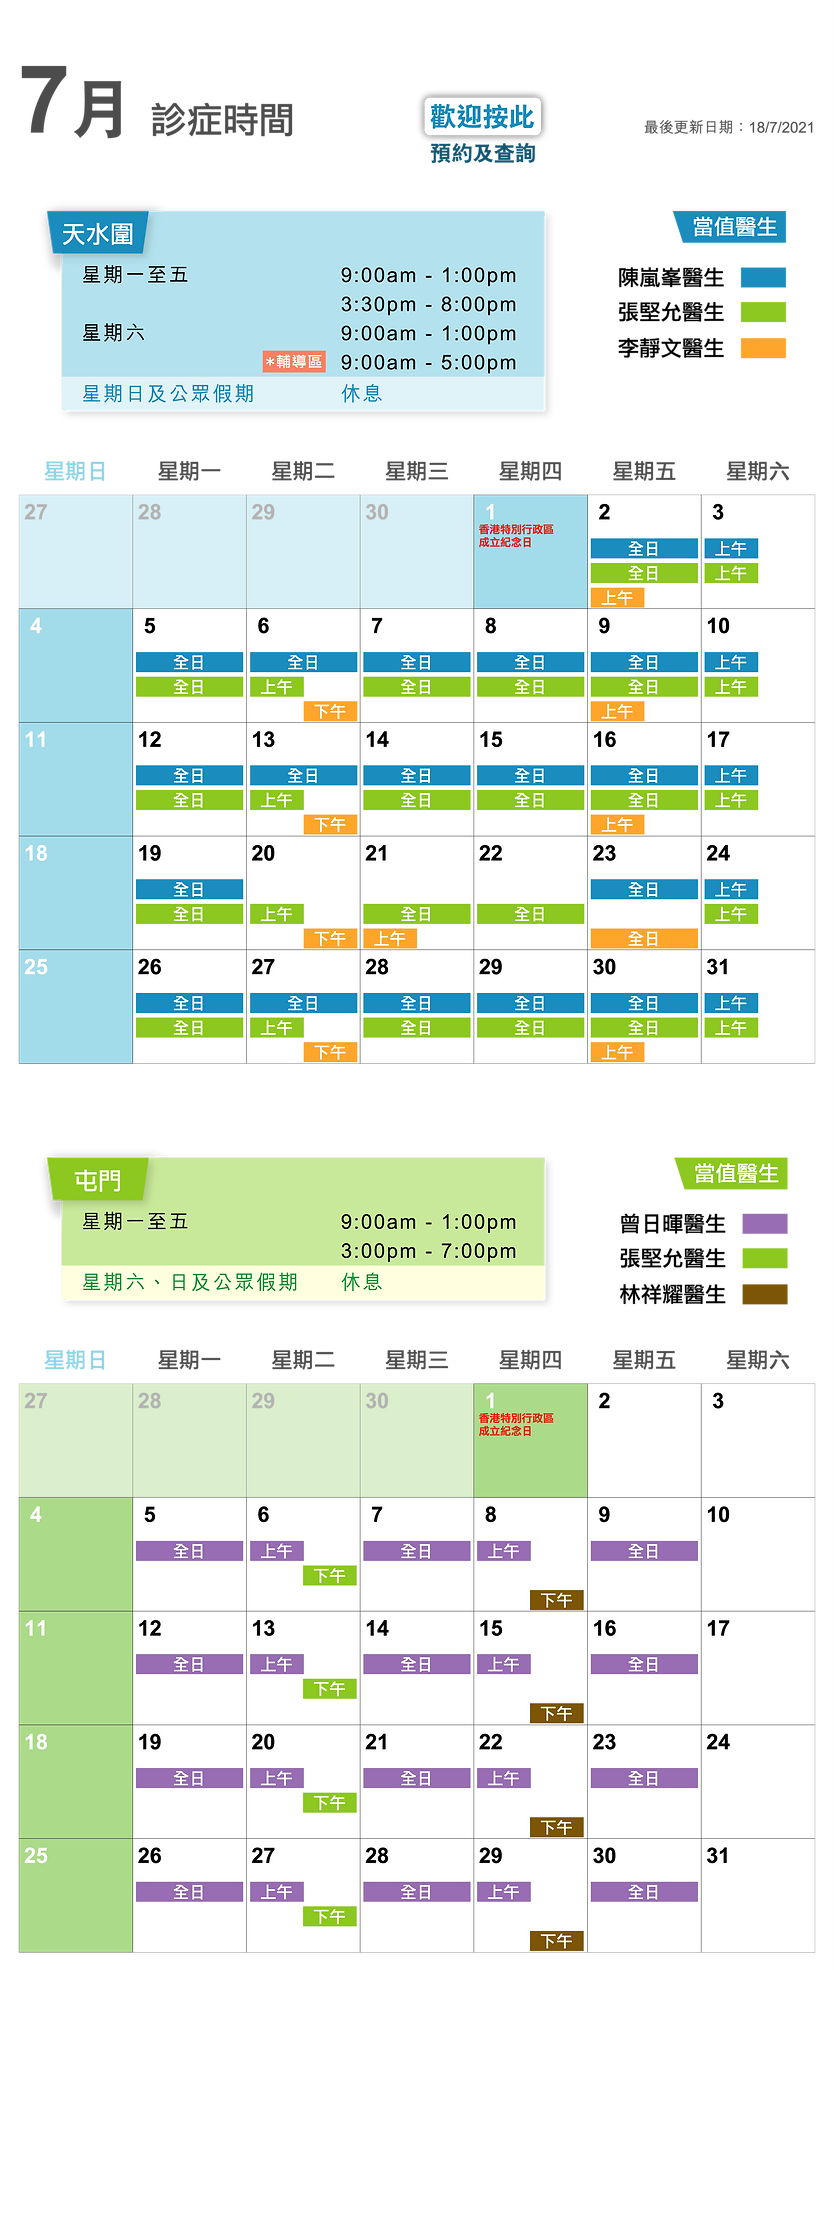 timetable_2places_July2021.png